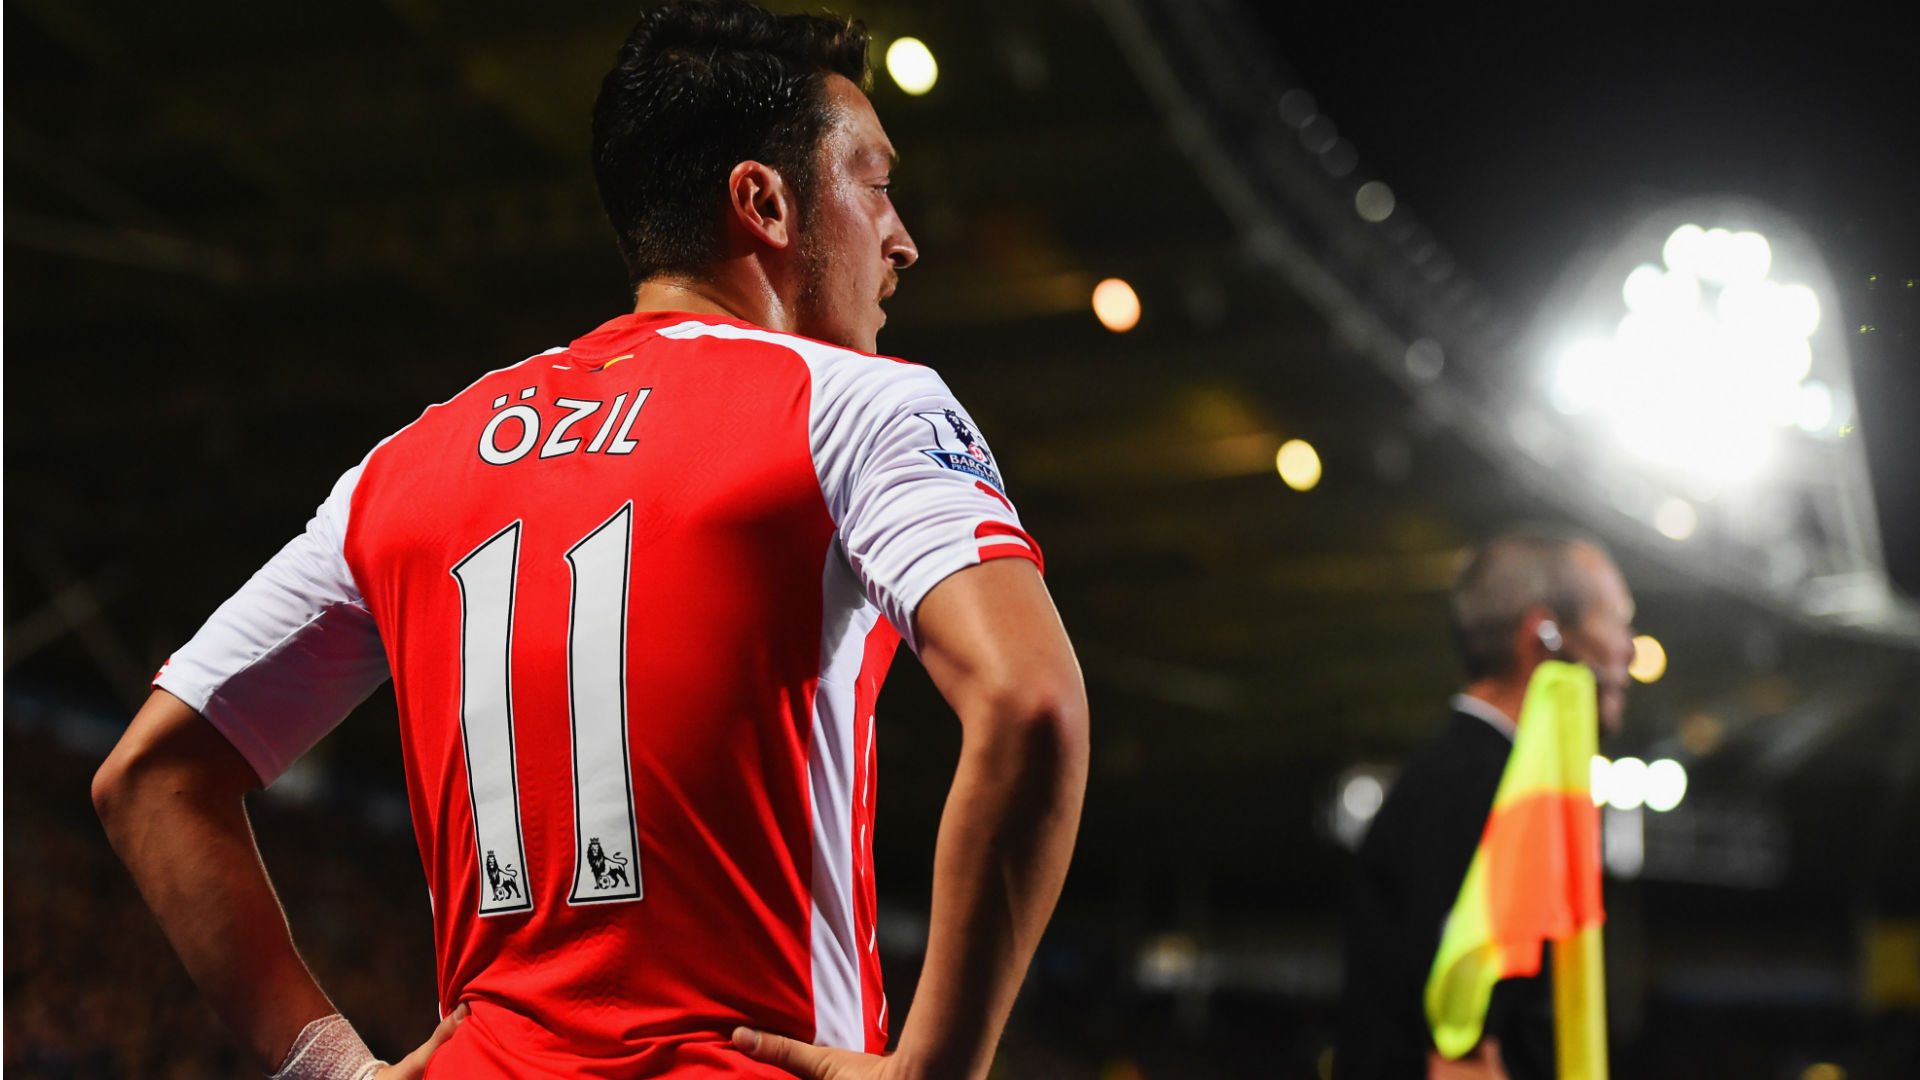 Arsenal vs. Sunderland odds and pick - Gunners look to clinch Champions League spot